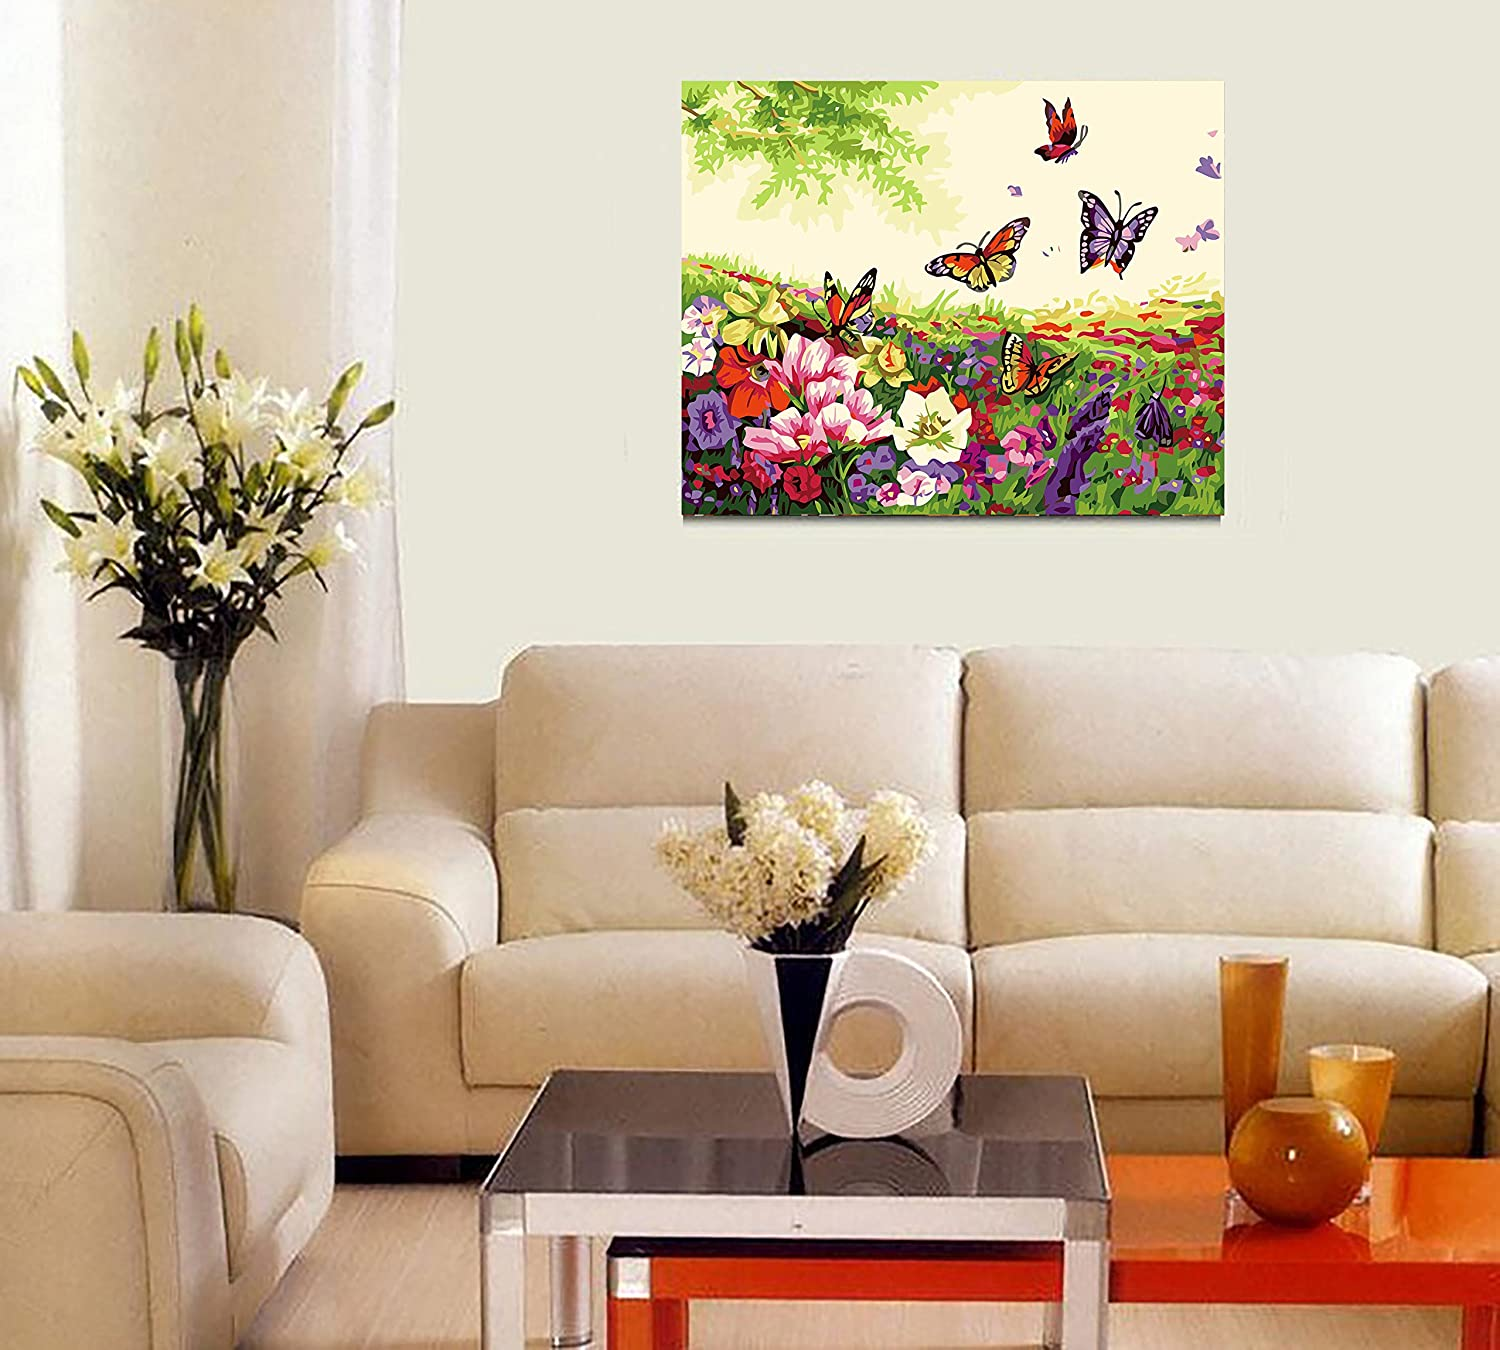 ButterflyandFlowers 16*20 inch DIY Pre-Printed Canvas Oil Painting Gift for Adults Kids Paint by Number Kits With Wooden Frame for Home Decor